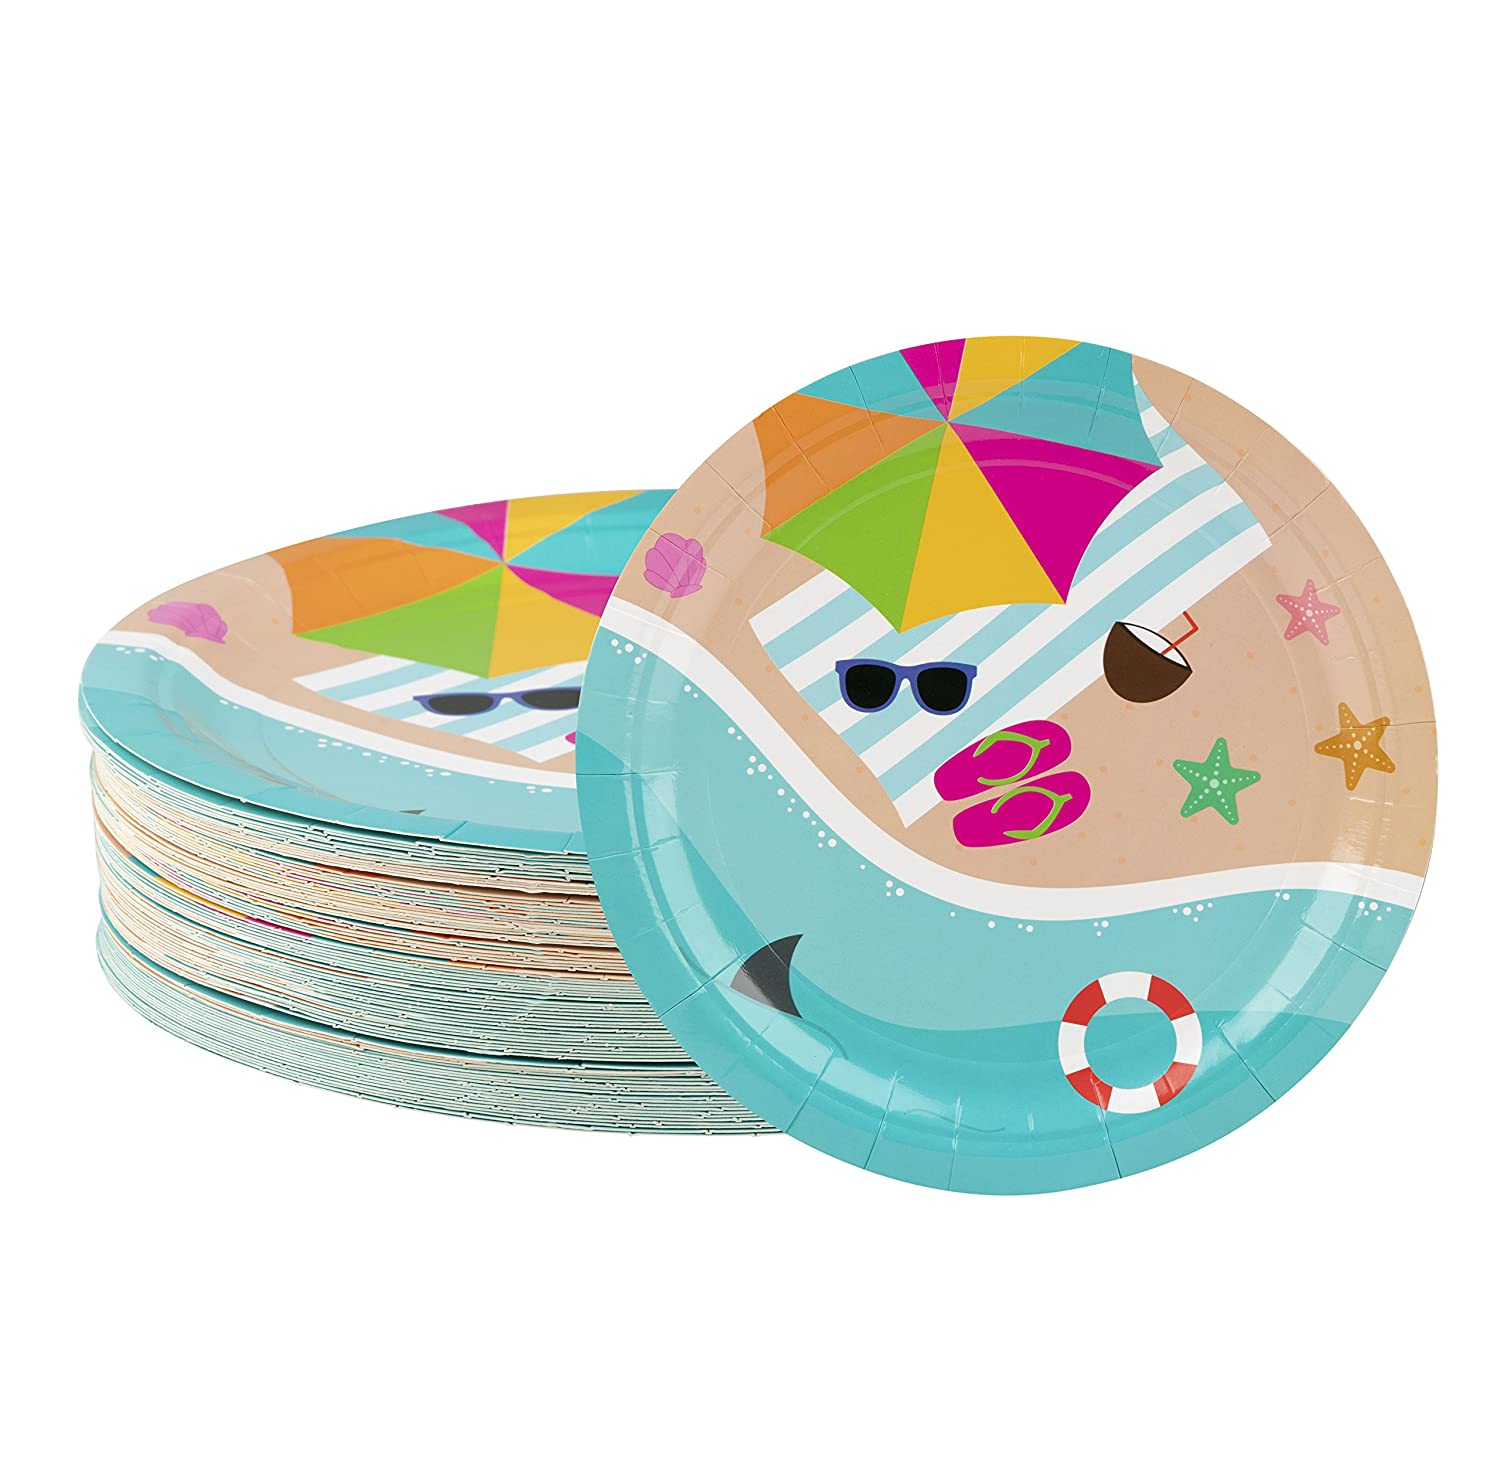 Disposable Plates - 80-Count Paper Plates, Summer Beach Party Supplies for Appetizer, Lunch, Dinner, and Dessert, Kids Birthdays, 9 x 9 inches